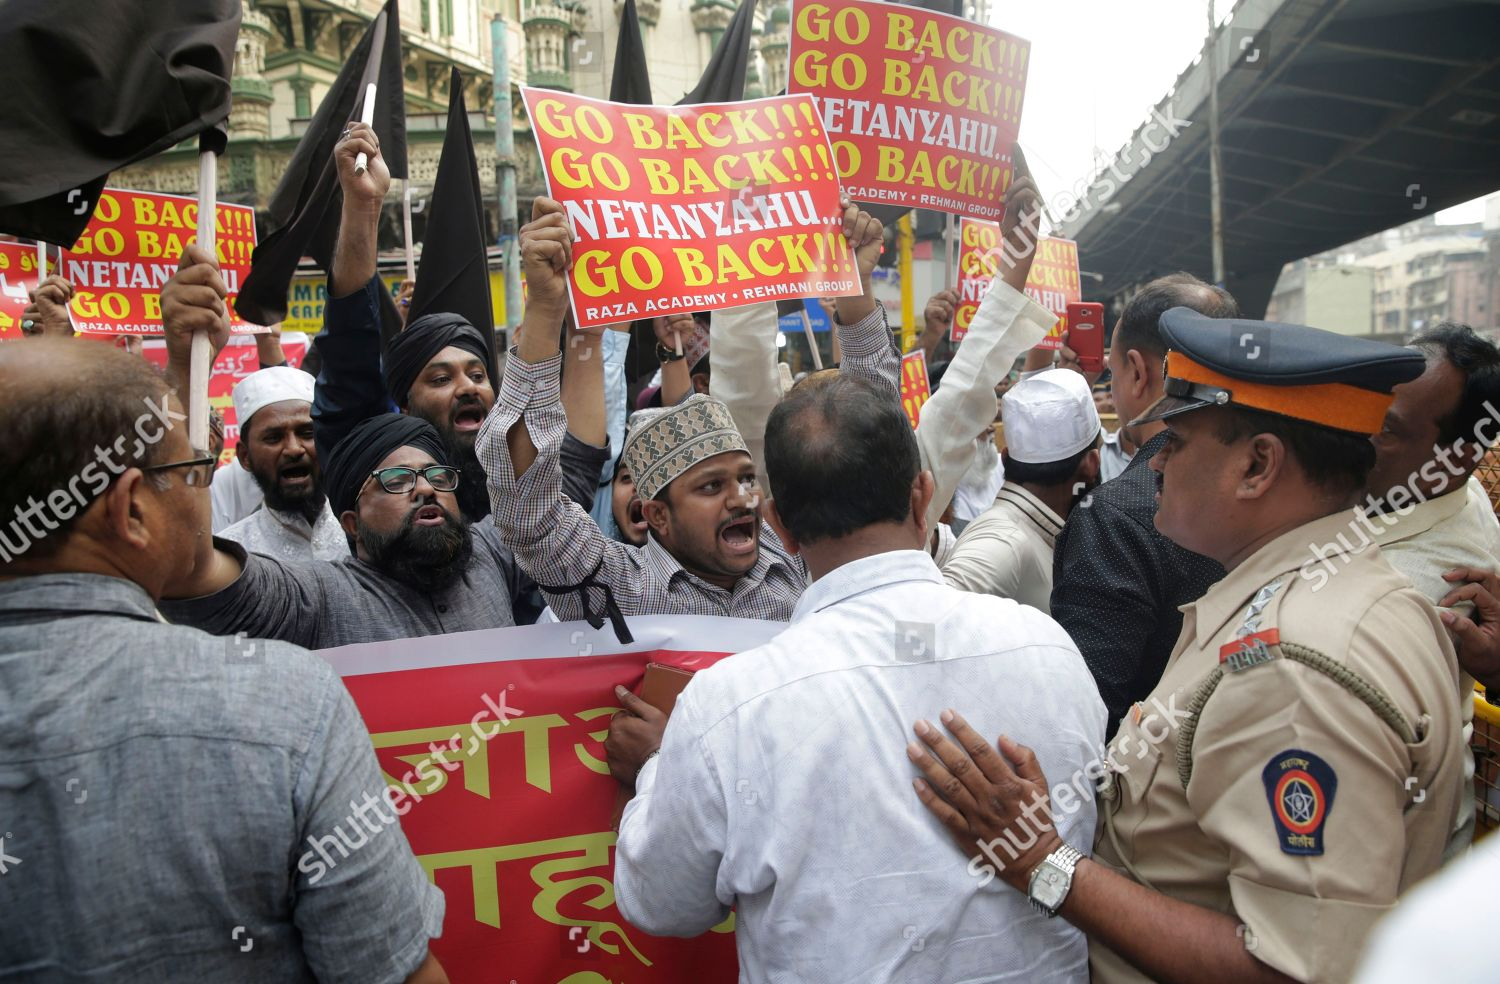 israel-protest-mumbai-india-shutterstock-editorial-9321413d.jpg